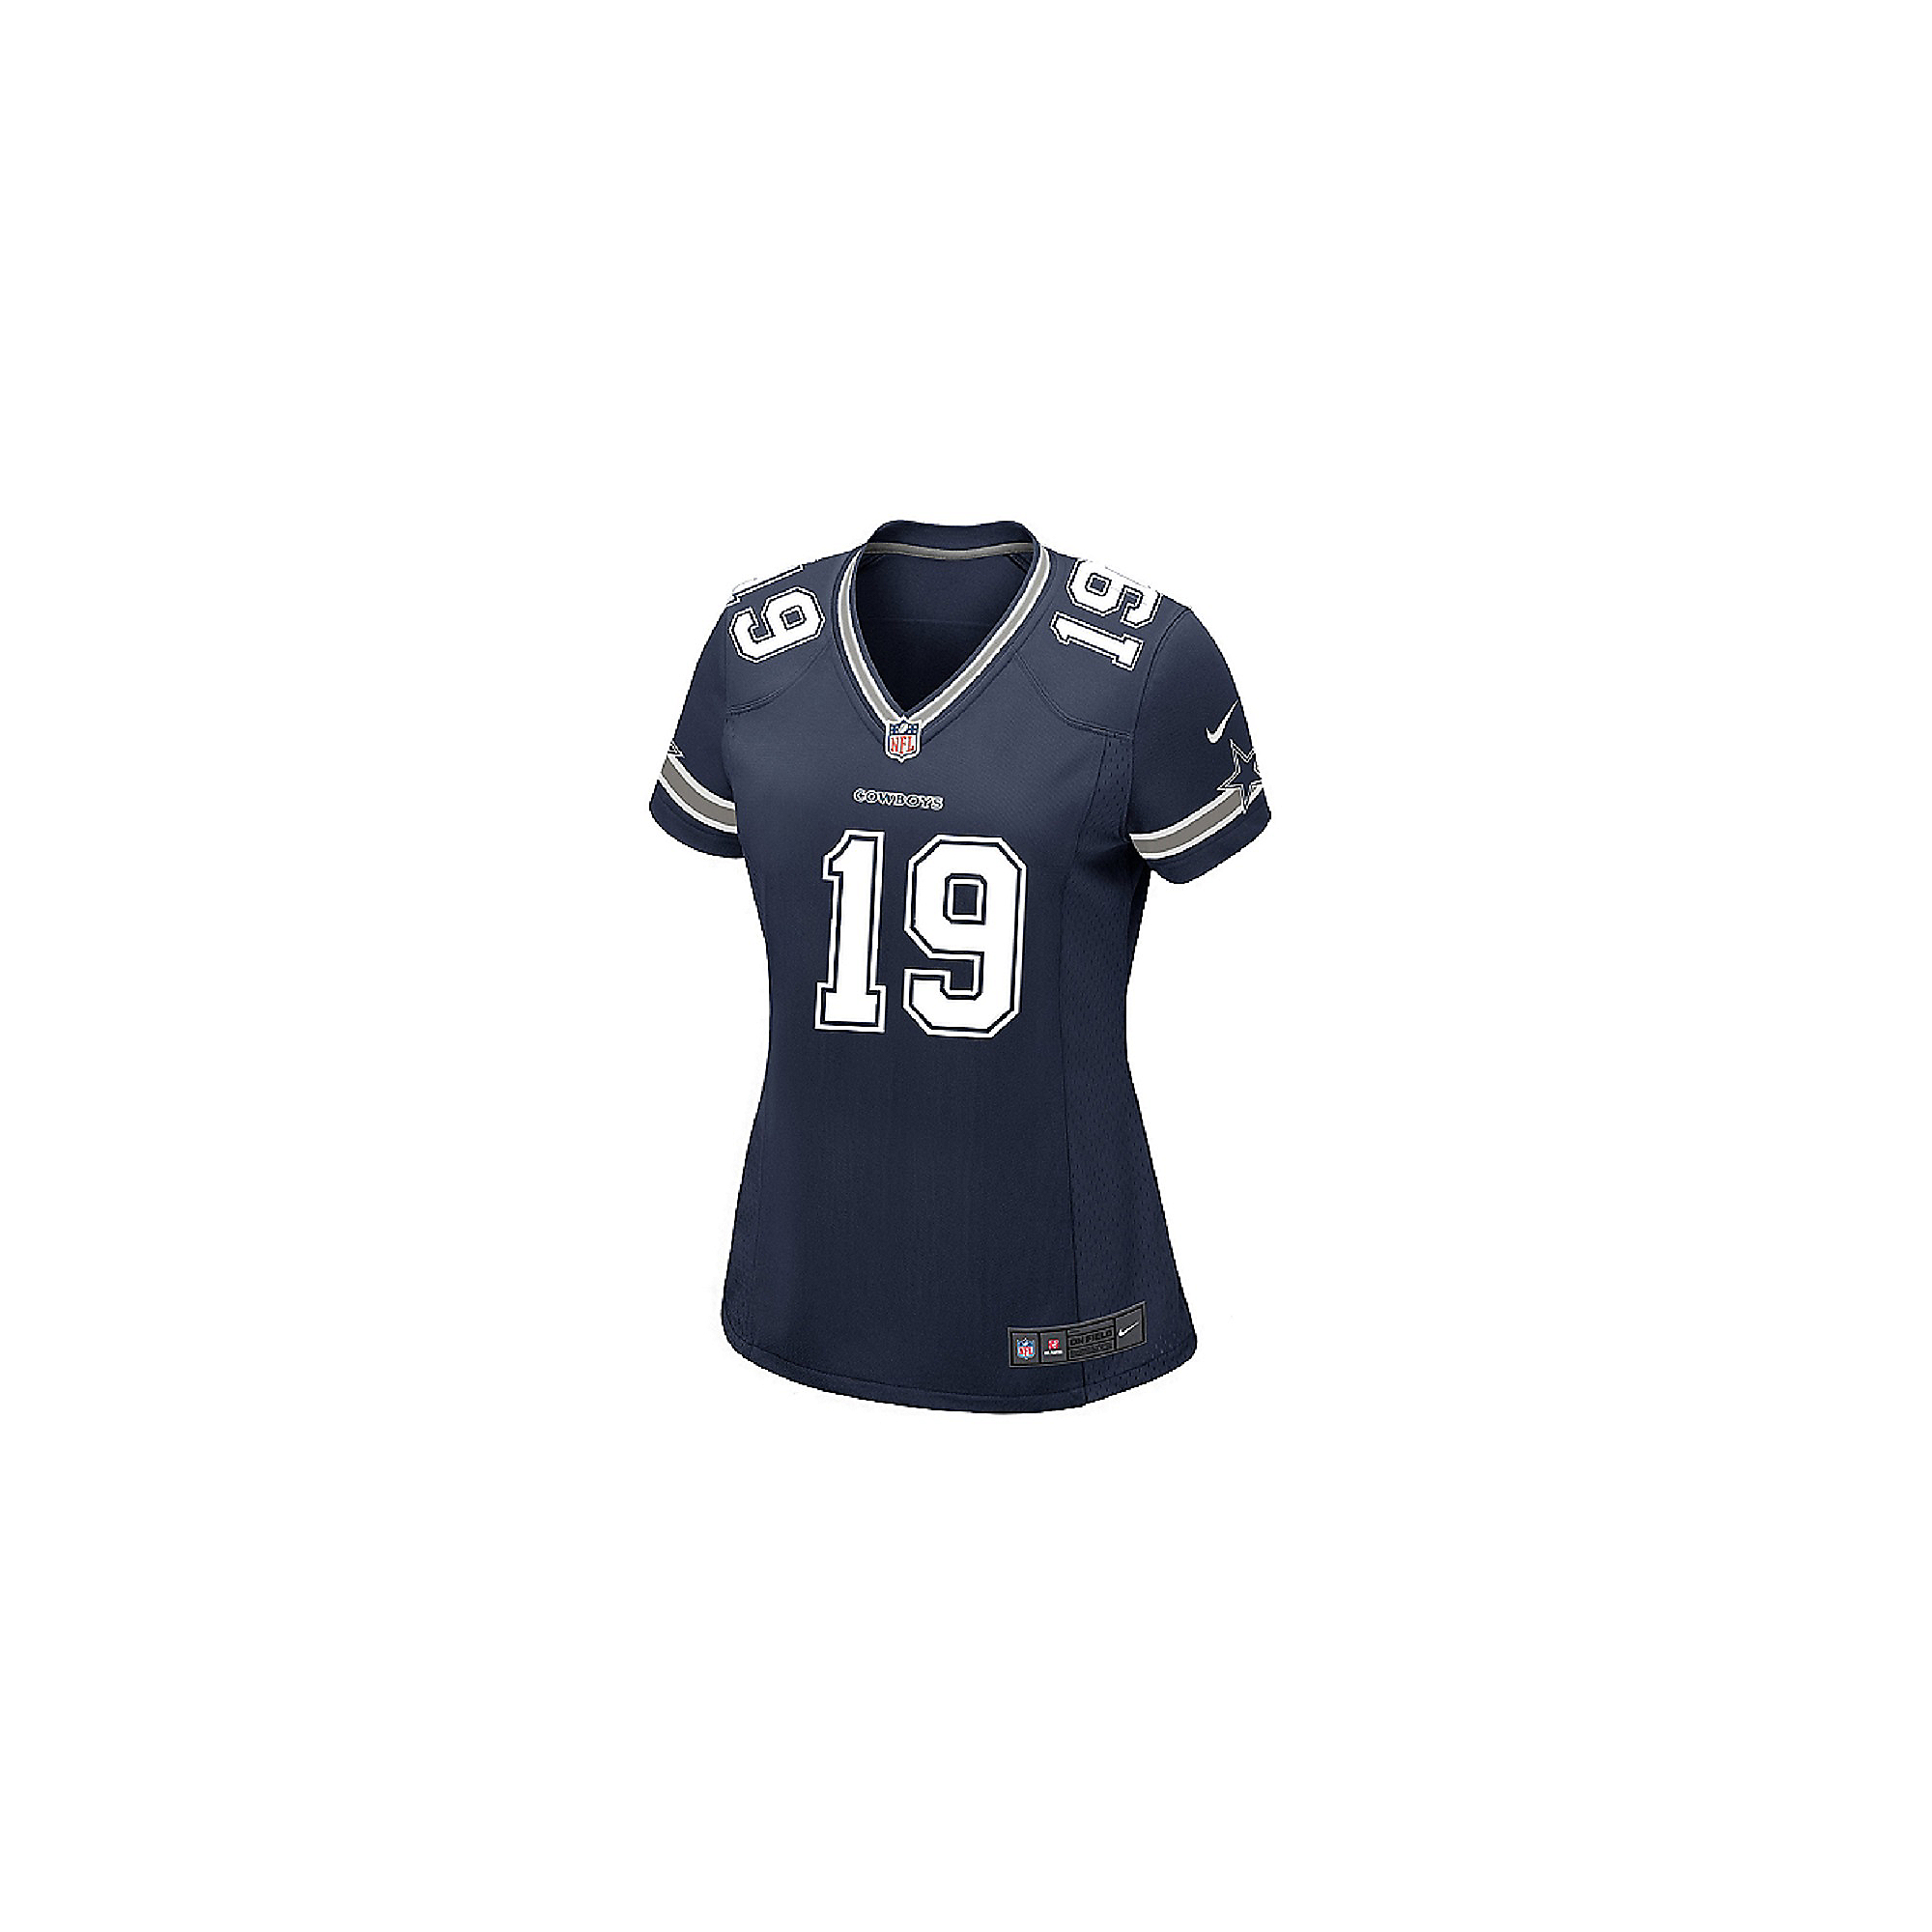 separation shoes 46db3 ad37a Dallas Cowboys Womens Amari Cooper #19 Nike Navy Game Replica Jersey |  Dallas Cowboys Pro Shop